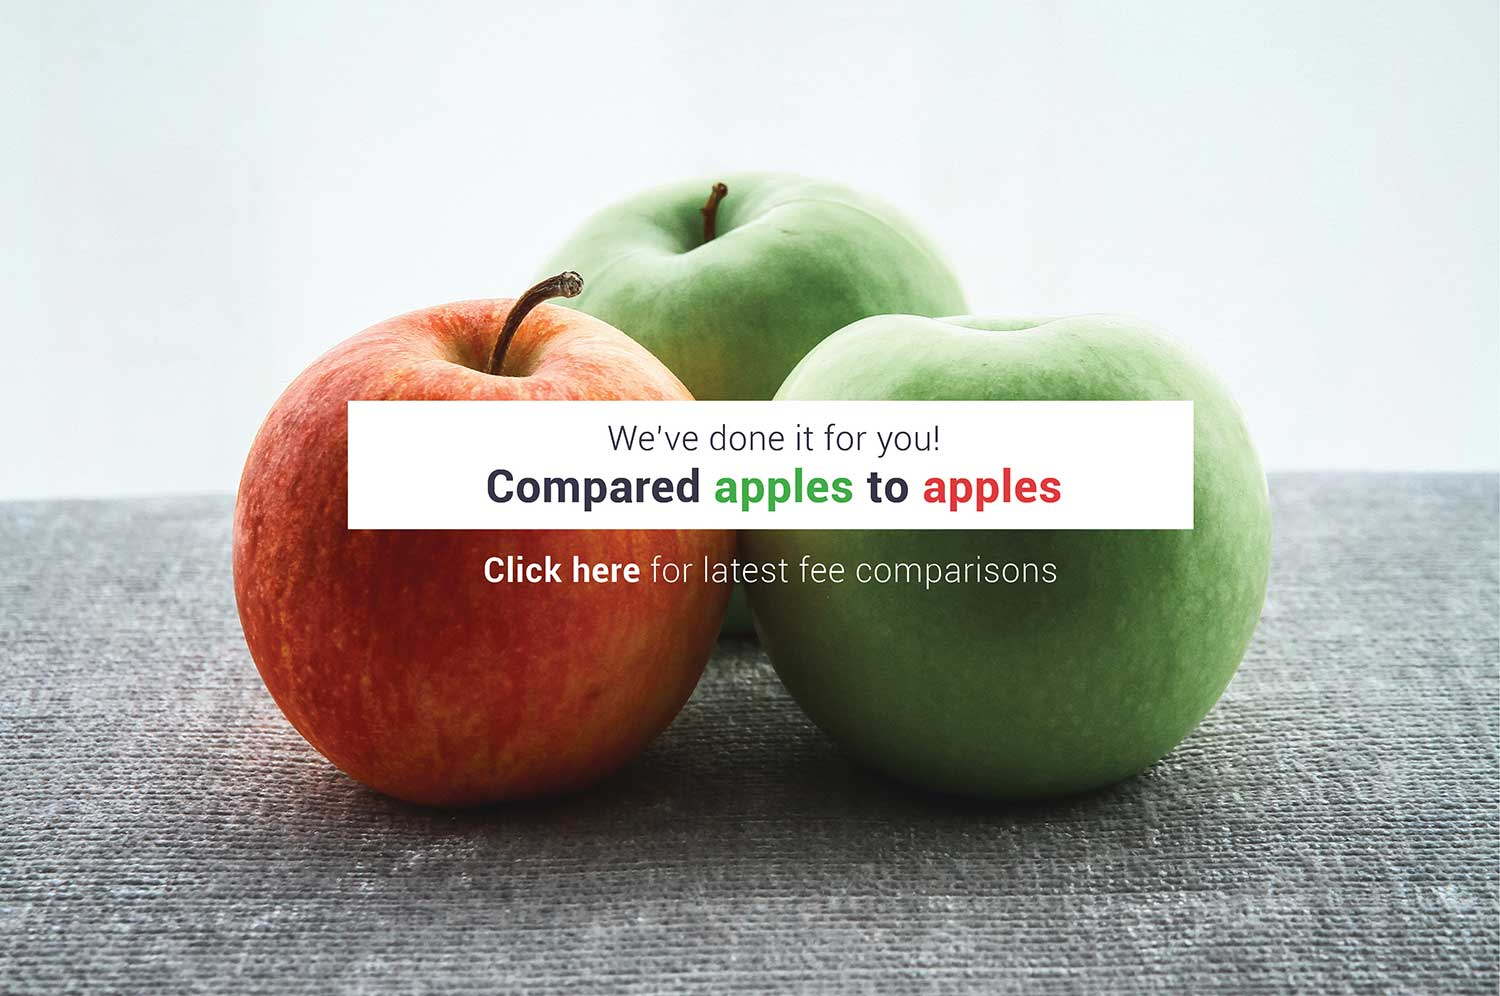 charlton christian college apples to apples